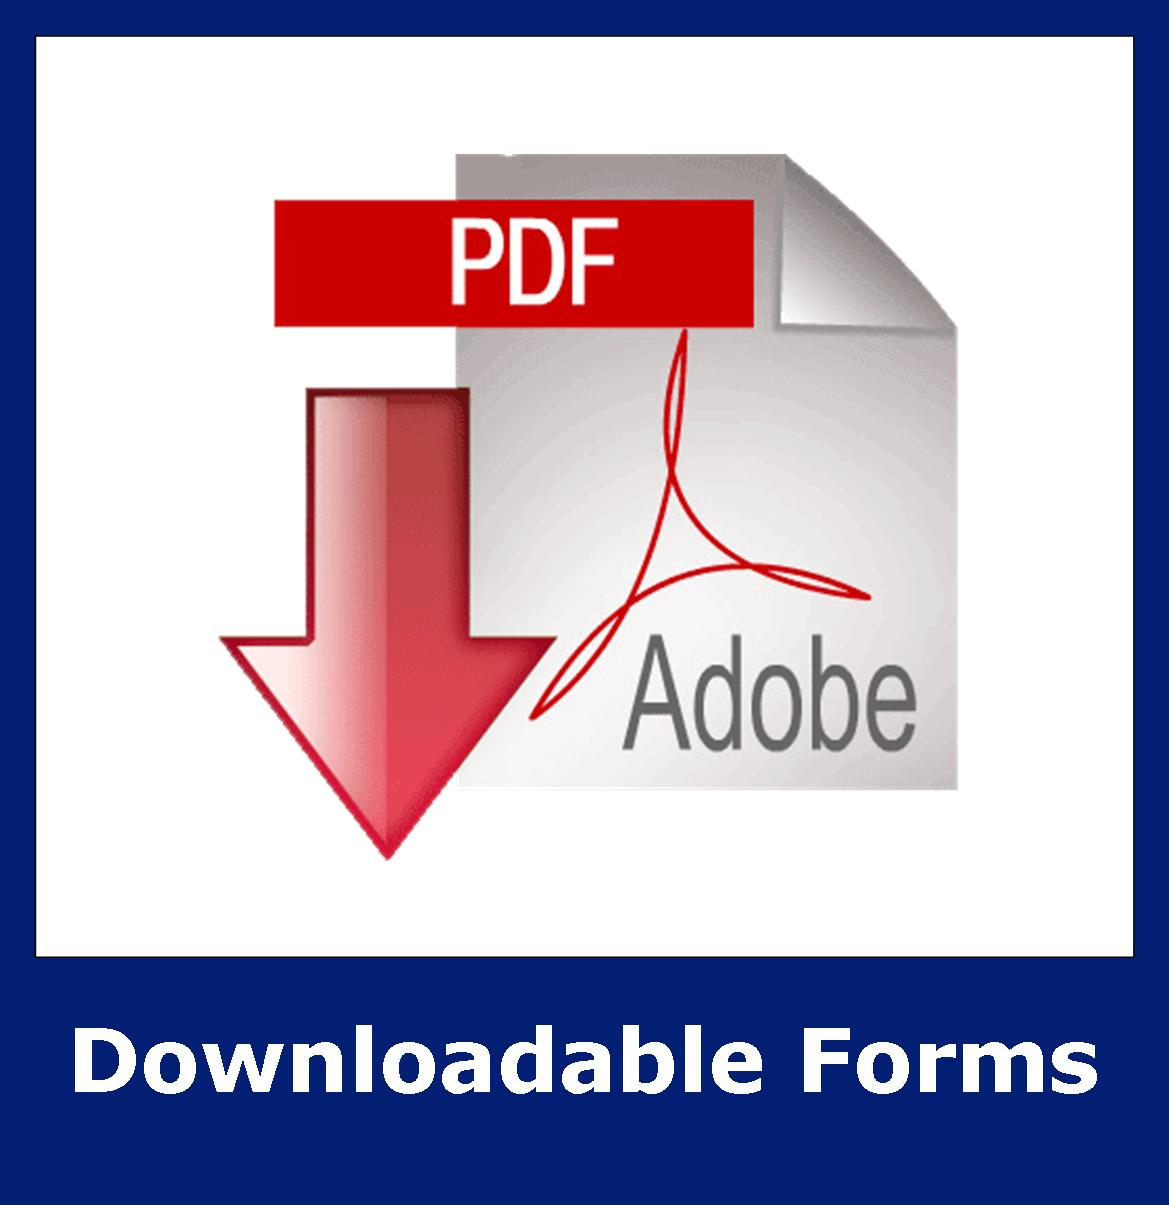 Downloadable PDF Forms